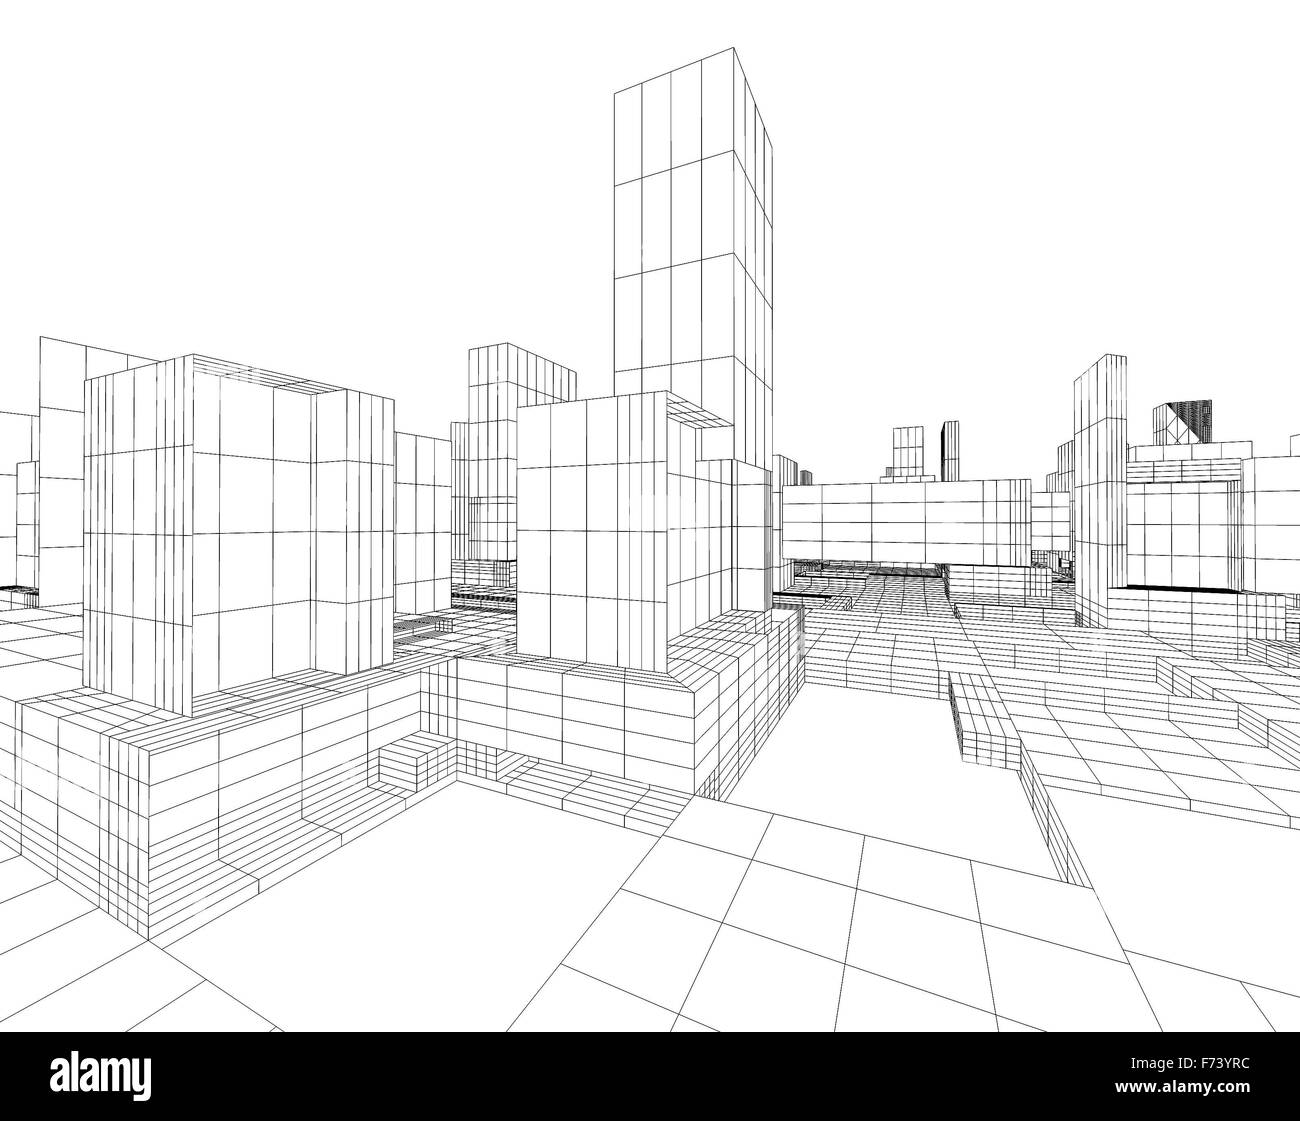 3d image of city blueprint with skyscraper and street stock photo 3d image of city blueprint with skyscraper and street malvernweather Image collections